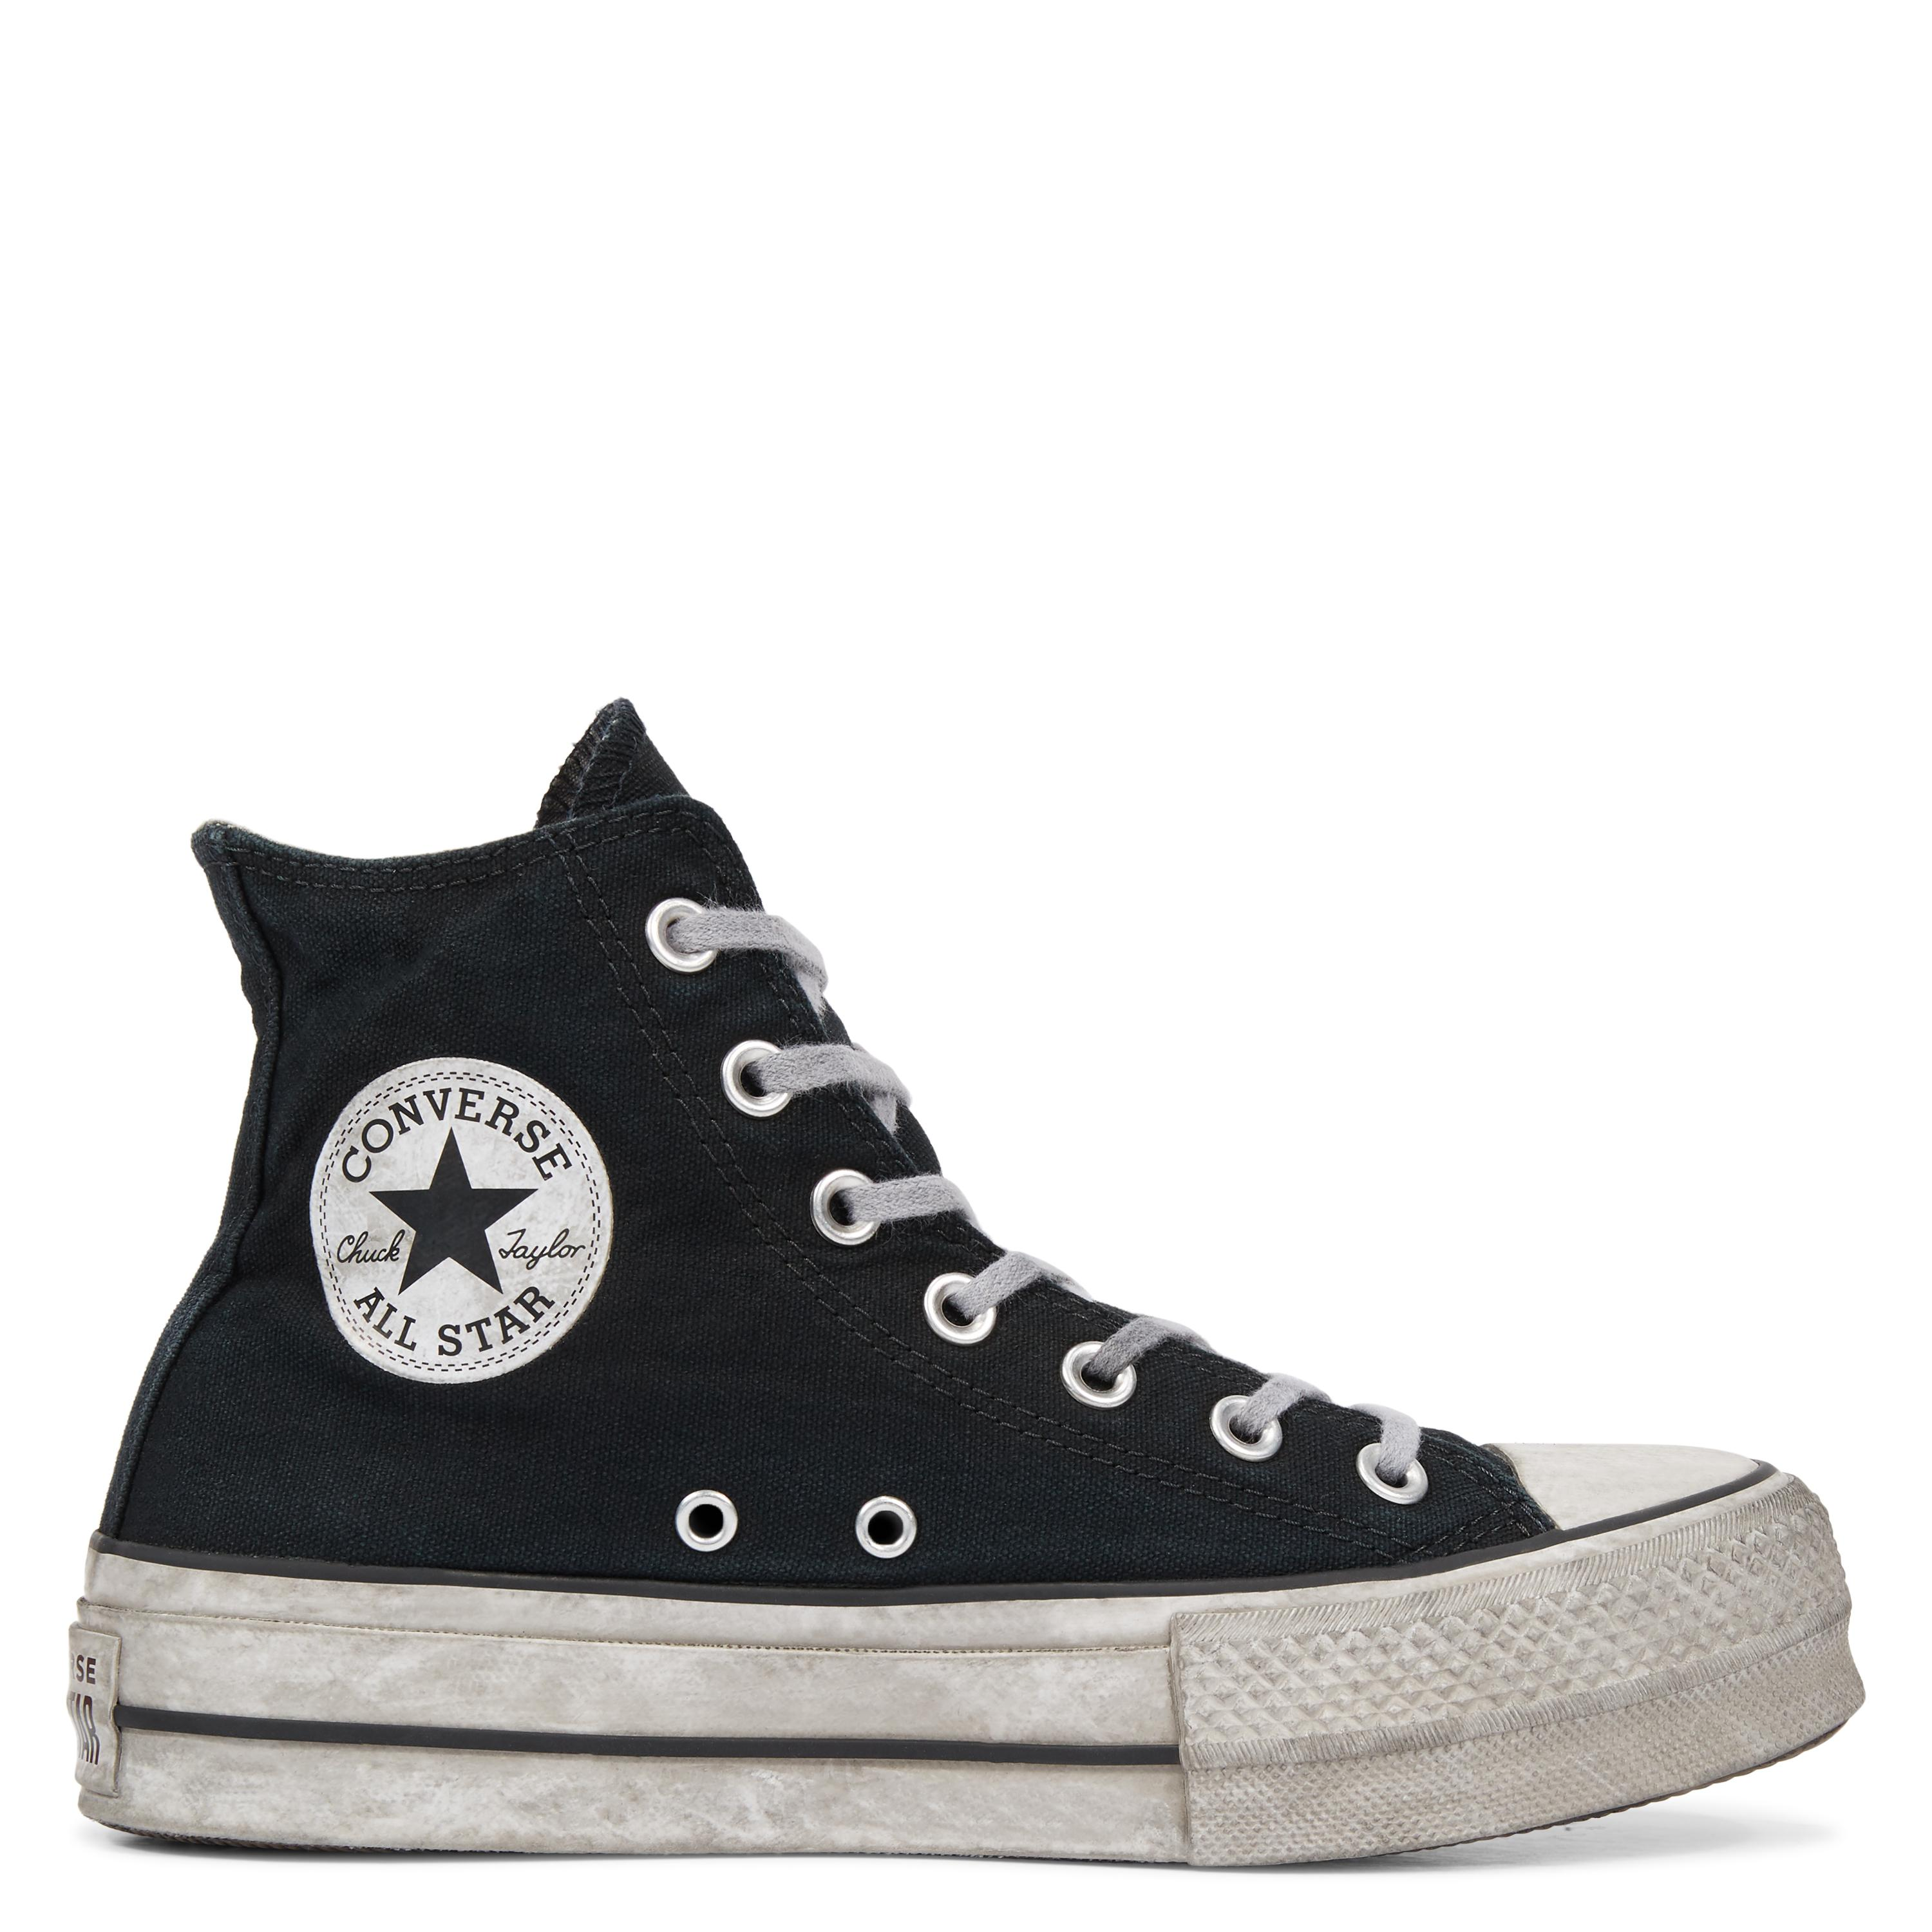 3cd069472ac1 Converse Chuck Taylor All Star Lift Smoked Canvas High Top in Black ...